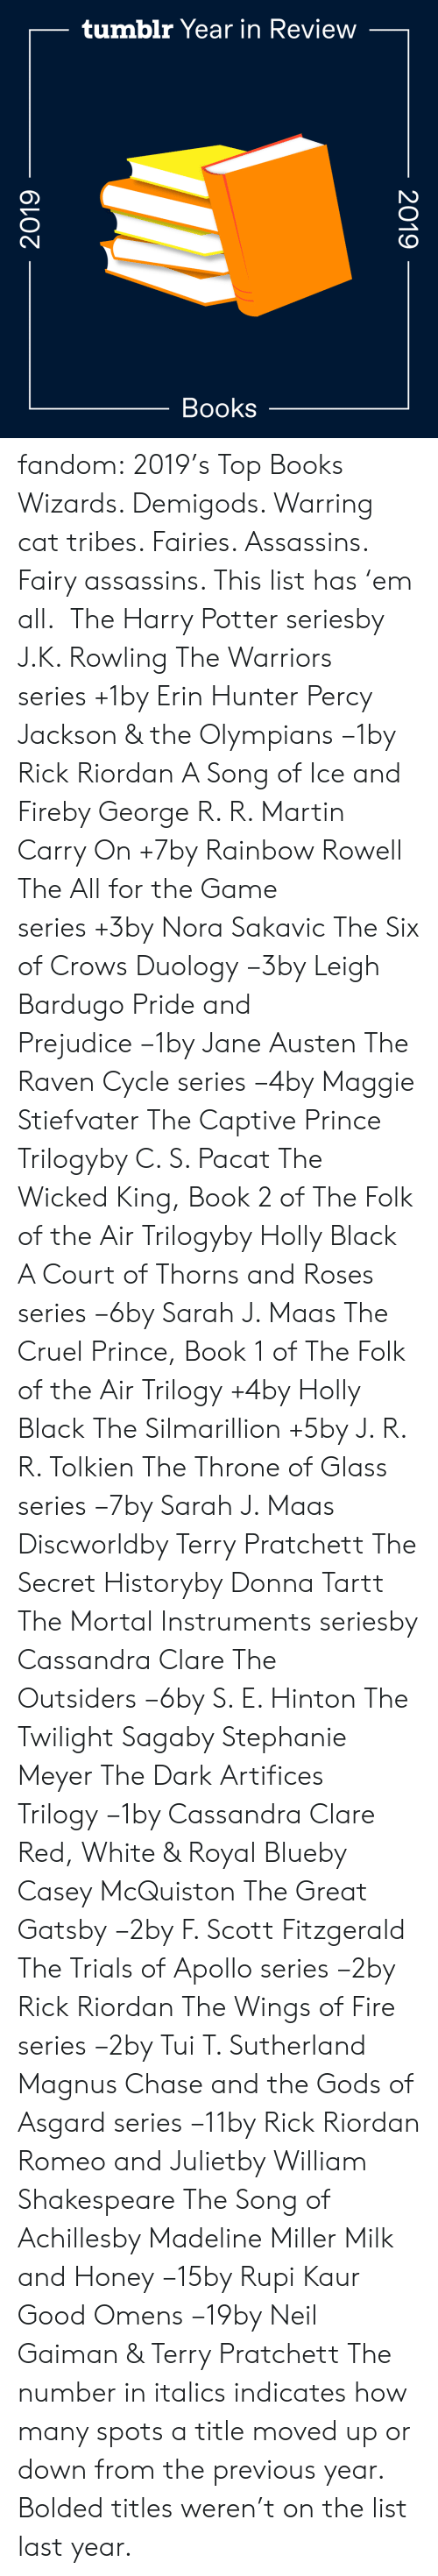 Rainbow: tumblr Year in Review  Books  2019  2019 fandom:  2019's Top Books  Wizards. Demigods. Warring cat tribes. Fairies. Assassins. Fairy assassins. This list has 'em all.   The Harry Potter seriesby J.K. Rowling  The Warriors series +1by Erin Hunter  Percy Jackson & the Olympians −1by Rick Riordan  A Song of Ice and Fireby George R. R. Martin  Carry On +7by Rainbow Rowell  The All for the Game series +3by Nora Sakavic  The Six of Crows Duology −3by Leigh Bardugo  Pride and Prejudice −1by Jane Austen  The Raven Cycle series −4by Maggie Stiefvater  The Captive Prince Trilogyby C. S. Pacat  The Wicked King, Book 2 of The Folk of the Air Trilogyby Holly Black  A Court of Thorns and Roses series −6by Sarah J. Maas  The Cruel Prince, Book 1 of The Folk of the Air Trilogy +4by Holly Black  The Silmarillion +5by J. R. R. Tolkien  The Throne of Glass series −7by Sarah J. Maas  Discworldby Terry Pratchett  The Secret Historyby Donna Tartt  The Mortal Instruments seriesby Cassandra Clare  The Outsiders −6by S. E. Hinton  The Twilight Sagaby Stephanie Meyer  The Dark Artifices Trilogy −1by Cassandra Clare  Red, White & Royal Blueby Casey McQuiston  The Great Gatsby −2by F. Scott Fitzgerald  The Trials of Apollo series −2by Rick Riordan  The Wings of Fire series −2by Tui T. Sutherland  Magnus Chase and the Gods of Asgard series −11by Rick Riordan  Romeo and Julietby William Shakespeare  The Song of Achillesby Madeline Miller  Milk and Honey −15by Rupi Kaur  Good Omens −19by Neil Gaiman & Terry Pratchett The number in italics indicates how many spots a title moved up or down from the previous year. Bolded titles weren't on the list last year.